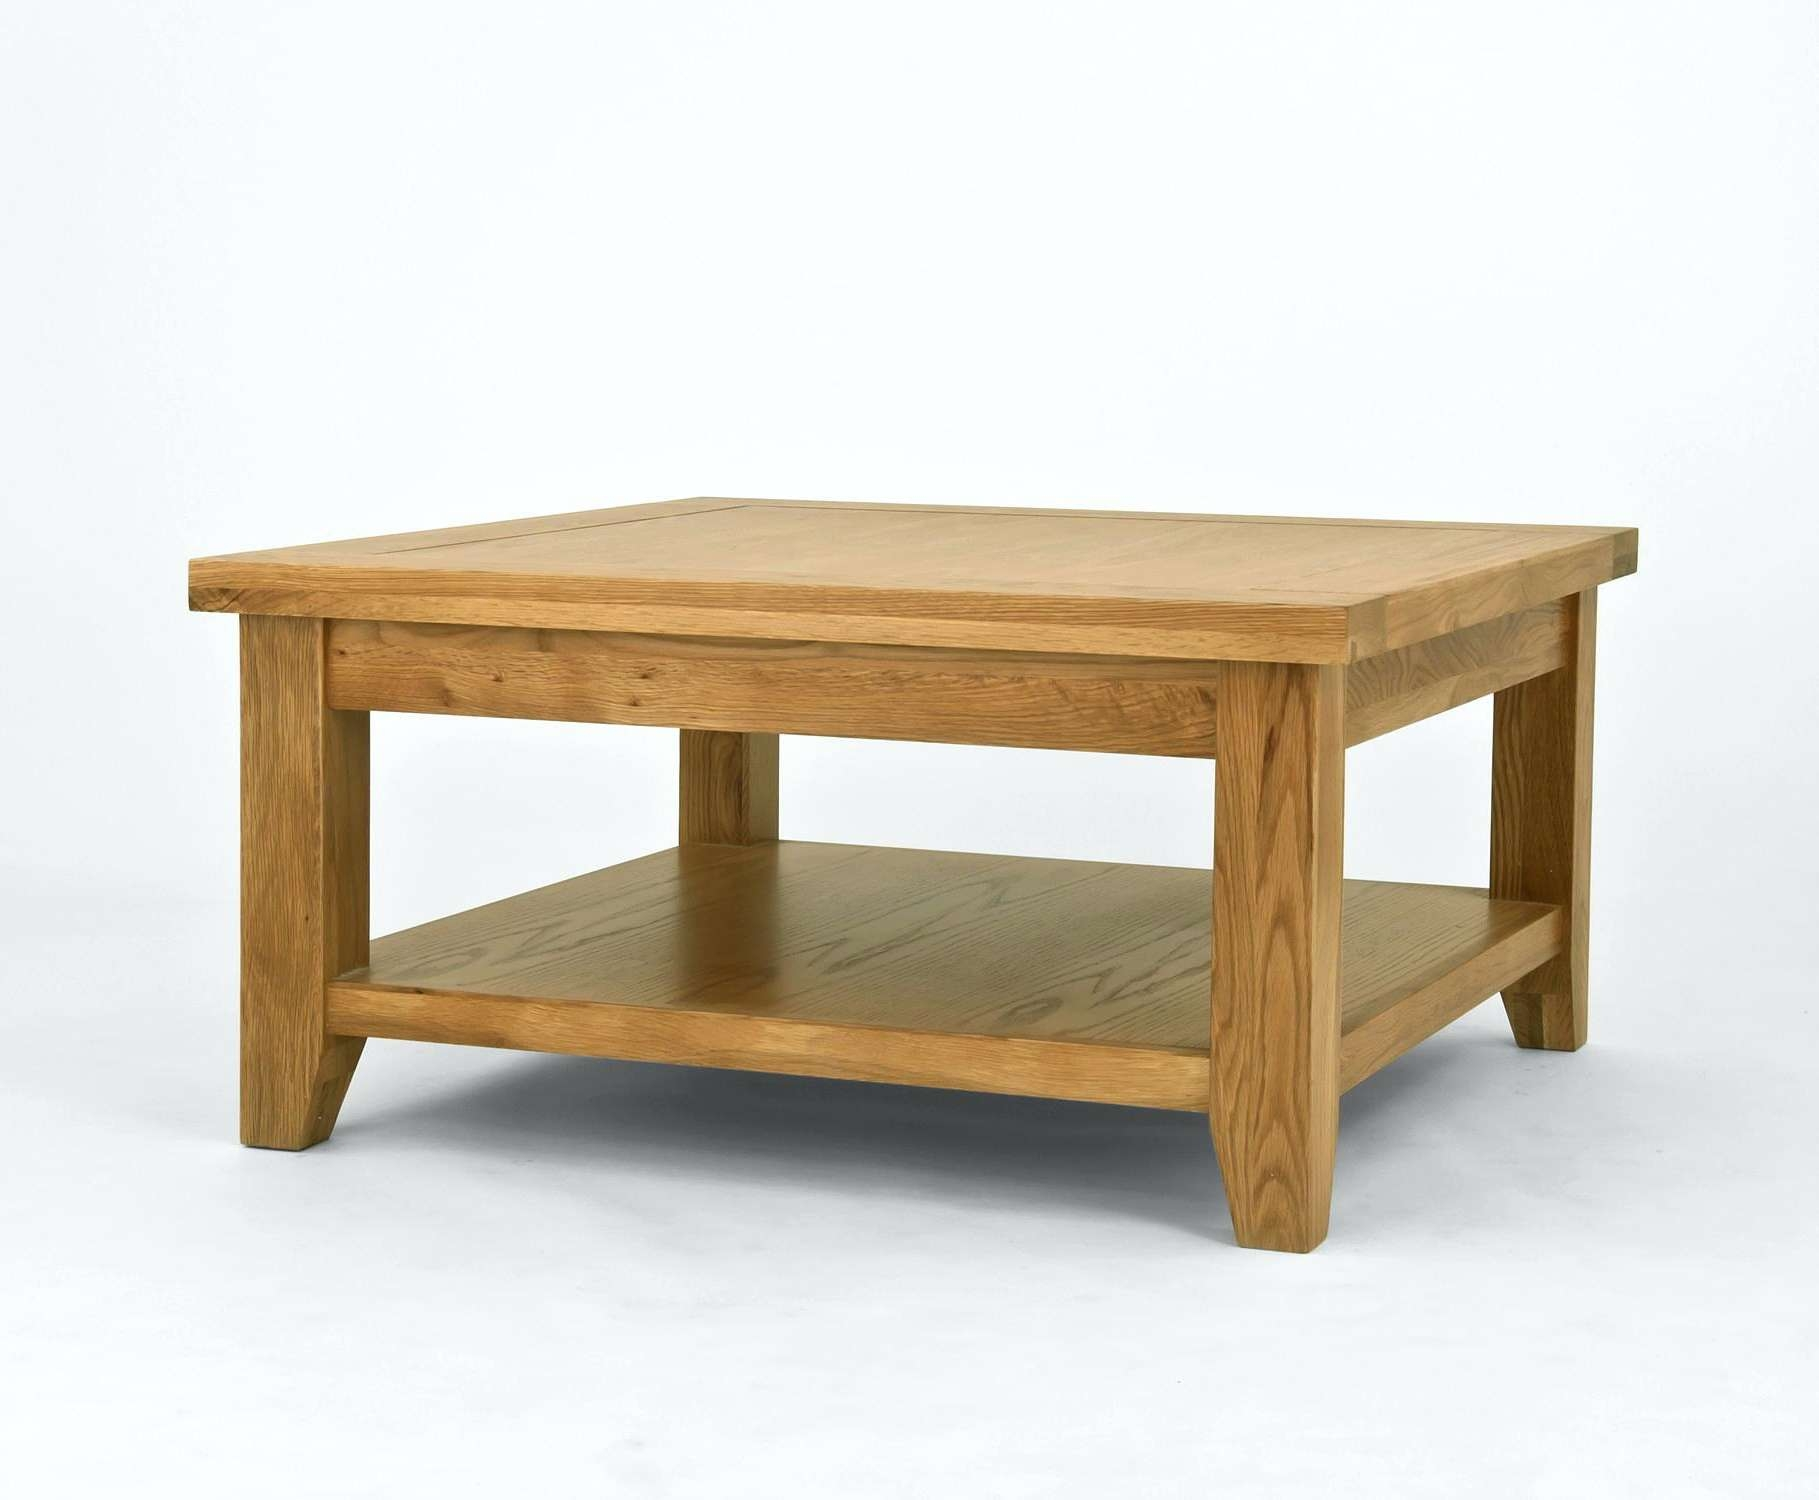 Favorite Oak Coffee Table With Shelf For Provence Coffee Table Oak Square With Shelf Is An Extensive Solid (View 19 of 20)